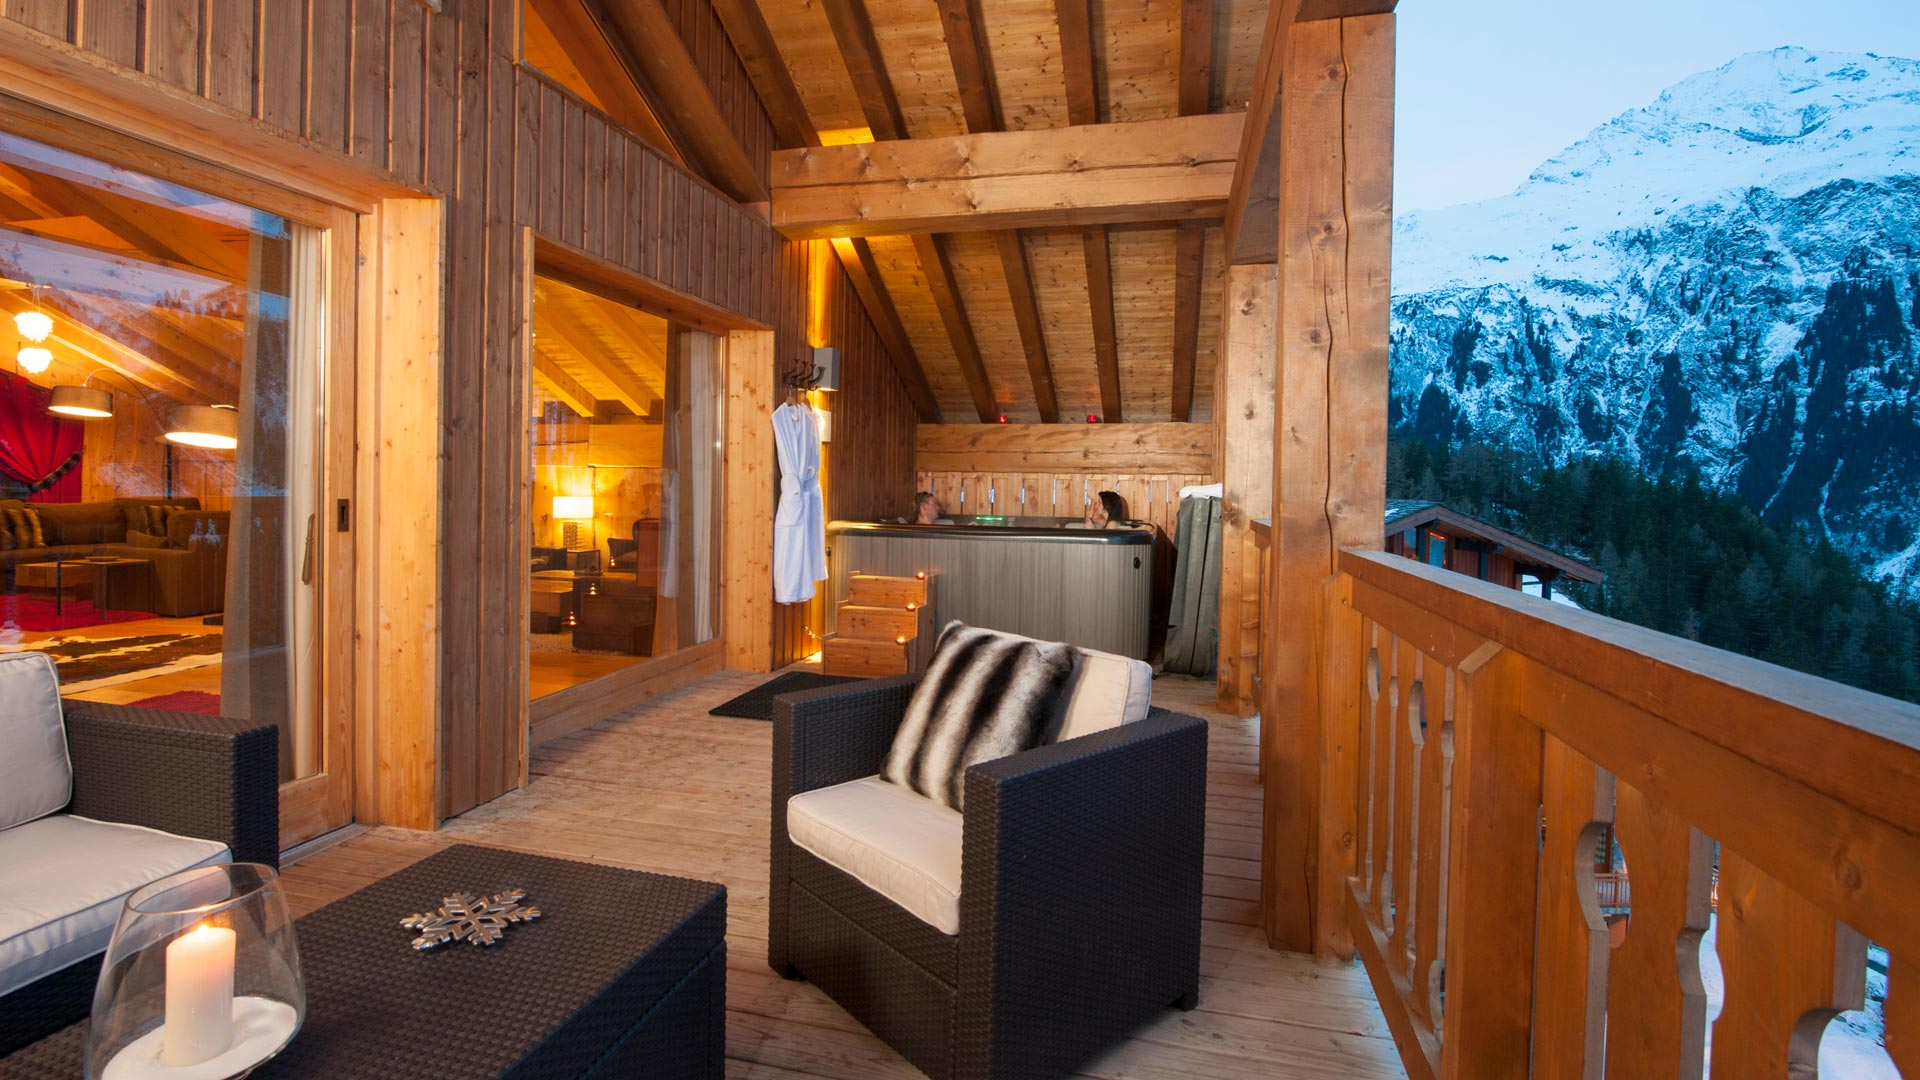 Balcony Hot Tub in The Peak Chalet in Ste Foy